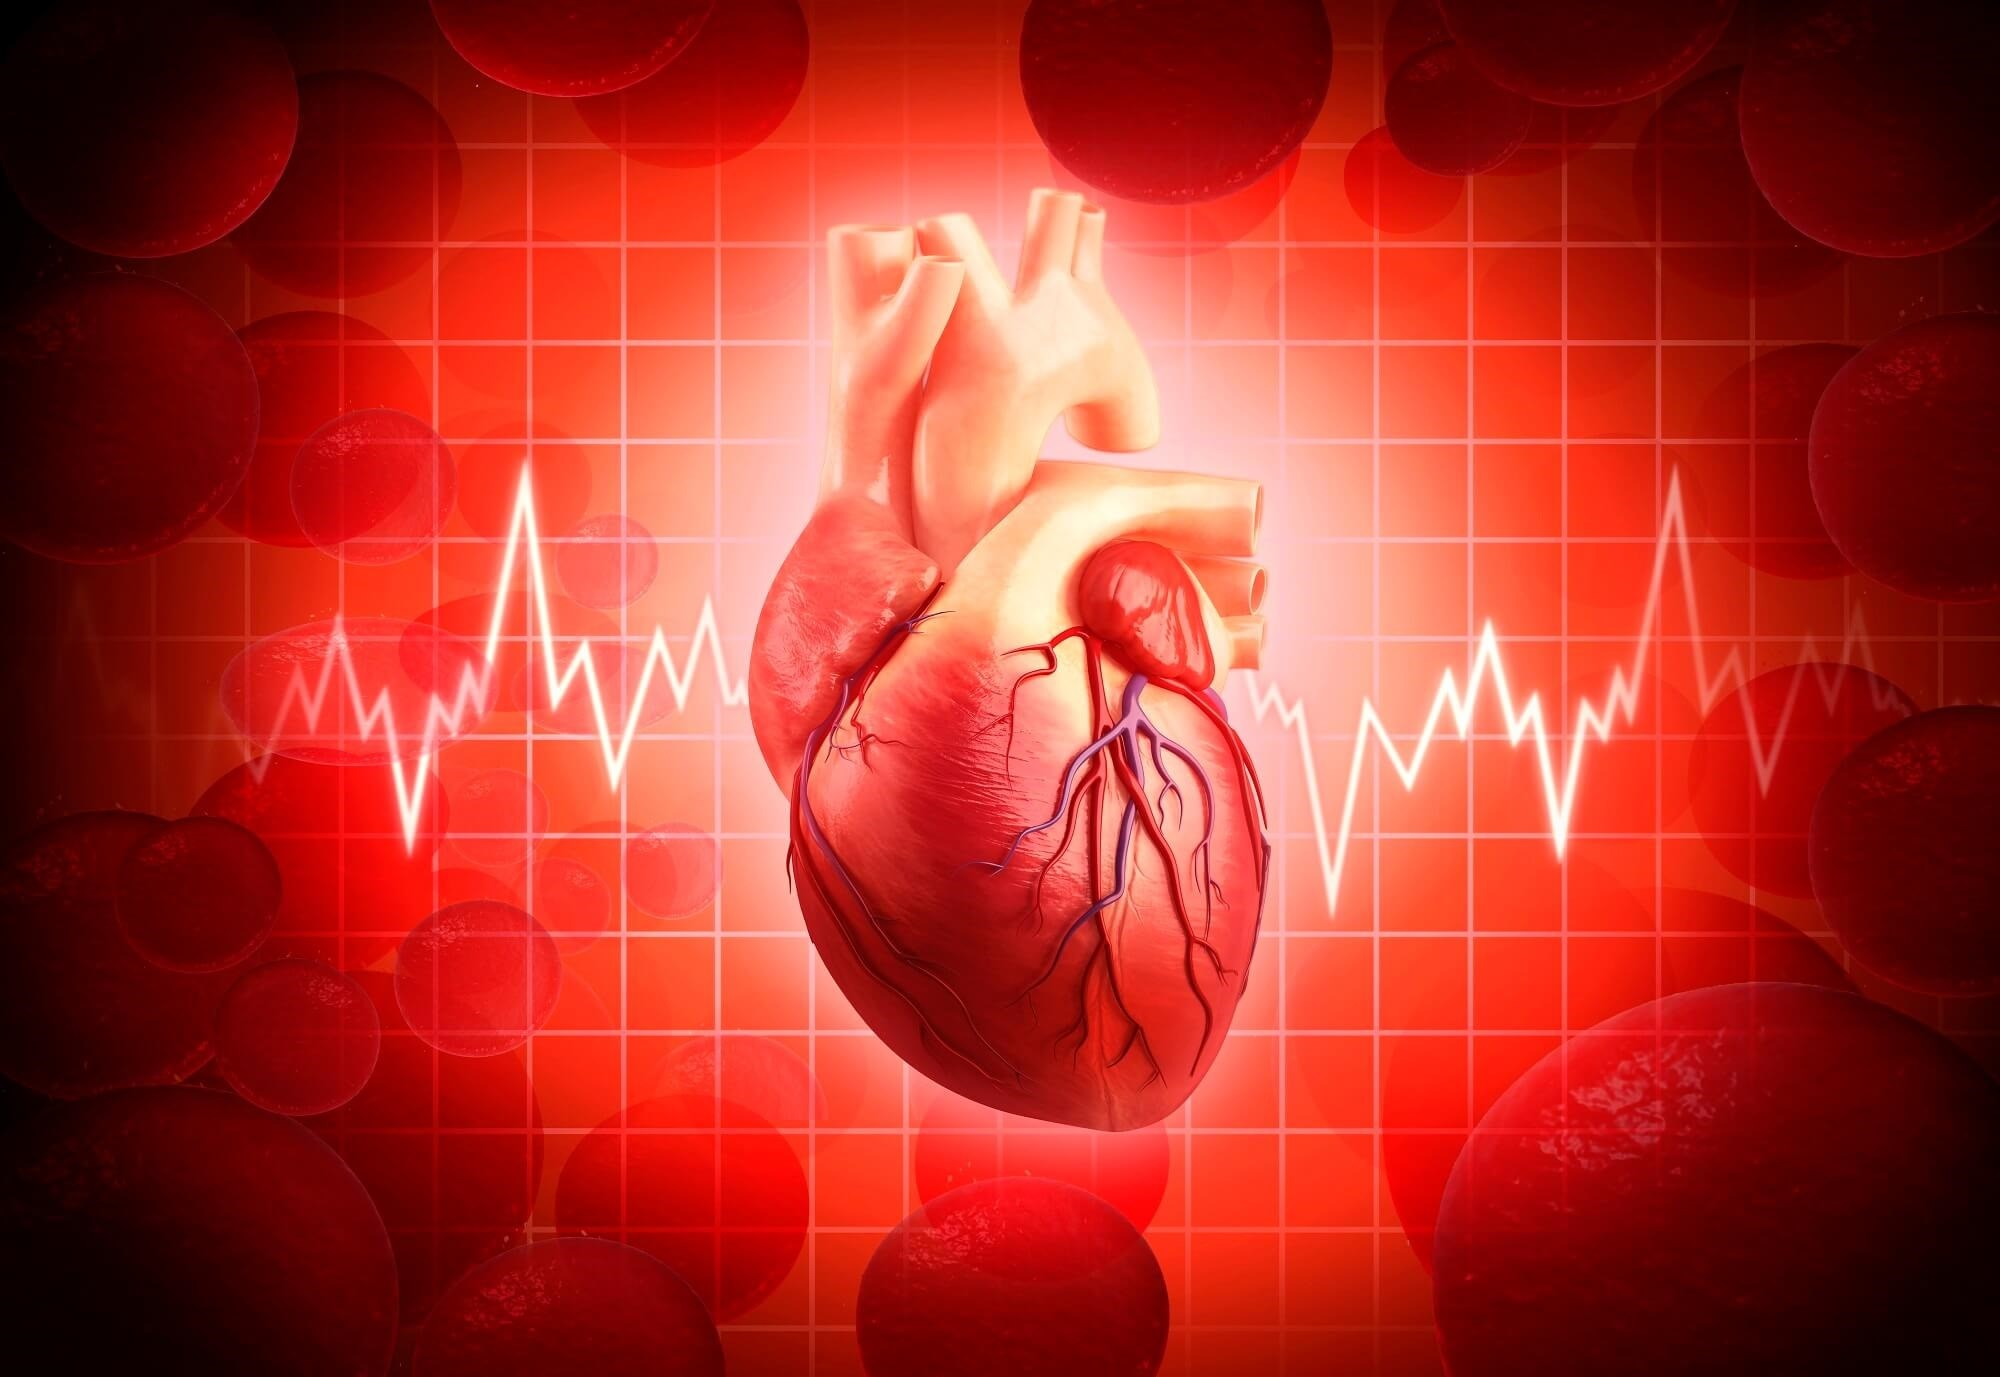 In patients with anxious depression, patients with higher heart rate variability had better outcomes.